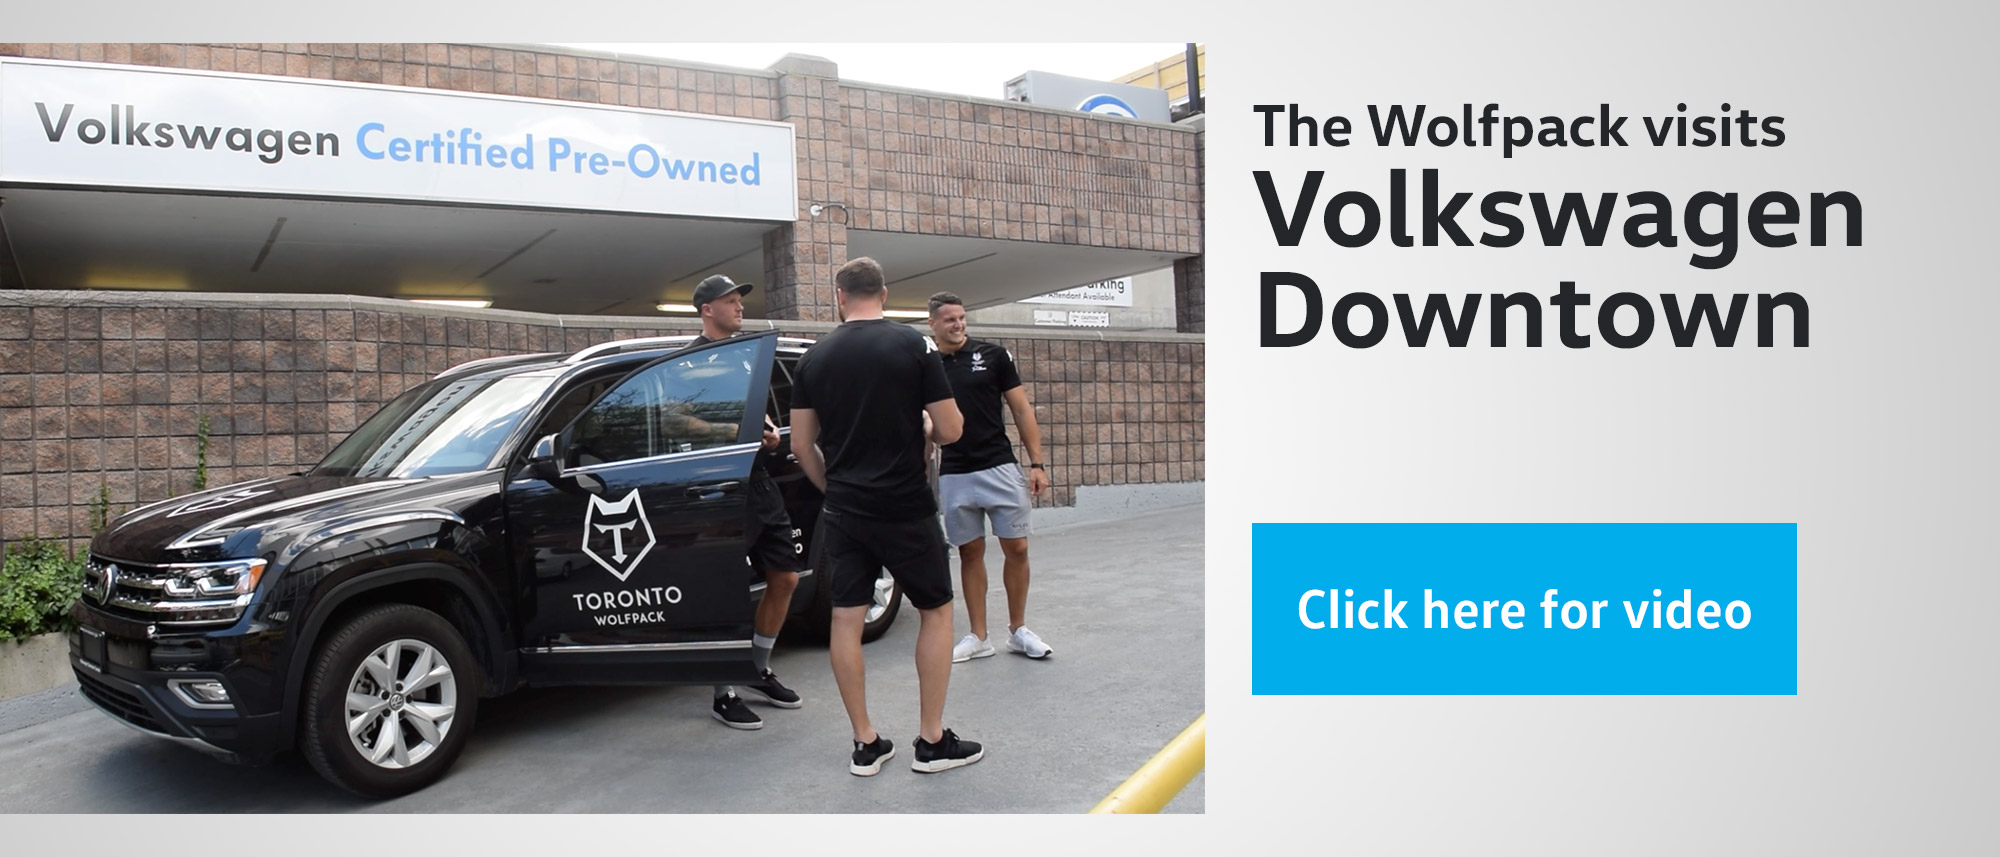 The Wolfpack visits Volkswagen Downtown slide